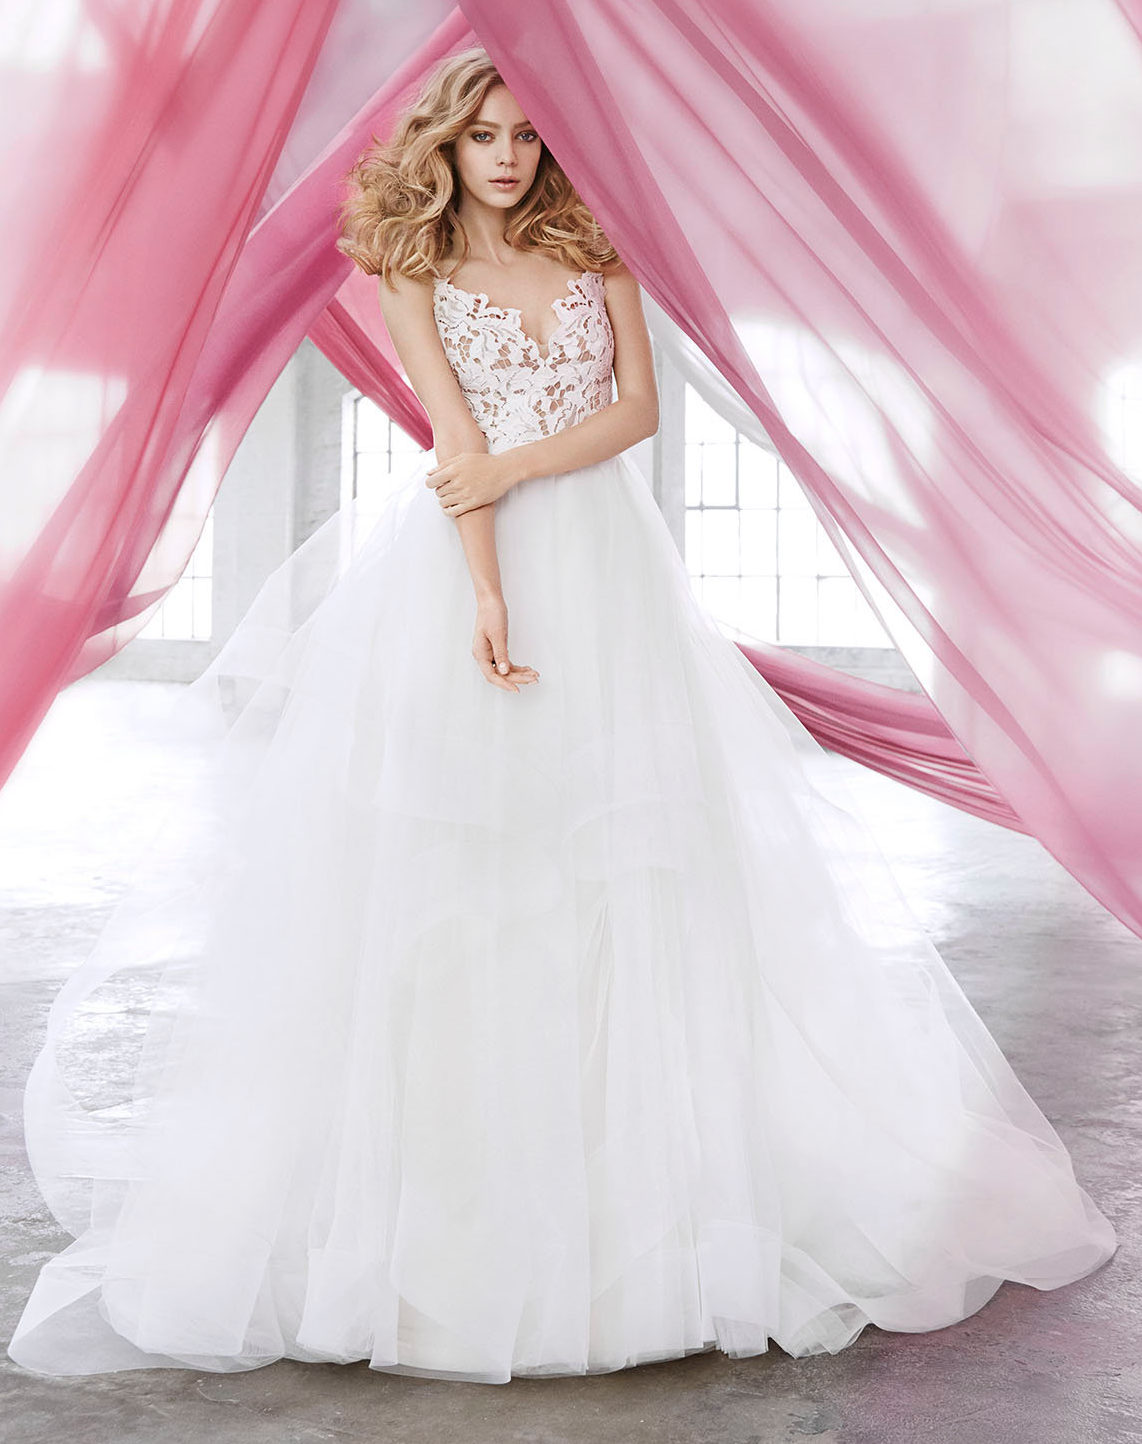 blush-hayley-paige-bridal-lace-tulle-ball-gown-scalloped-v-neck-strap-tiered-tulle-horsehair-trim-1600_lg